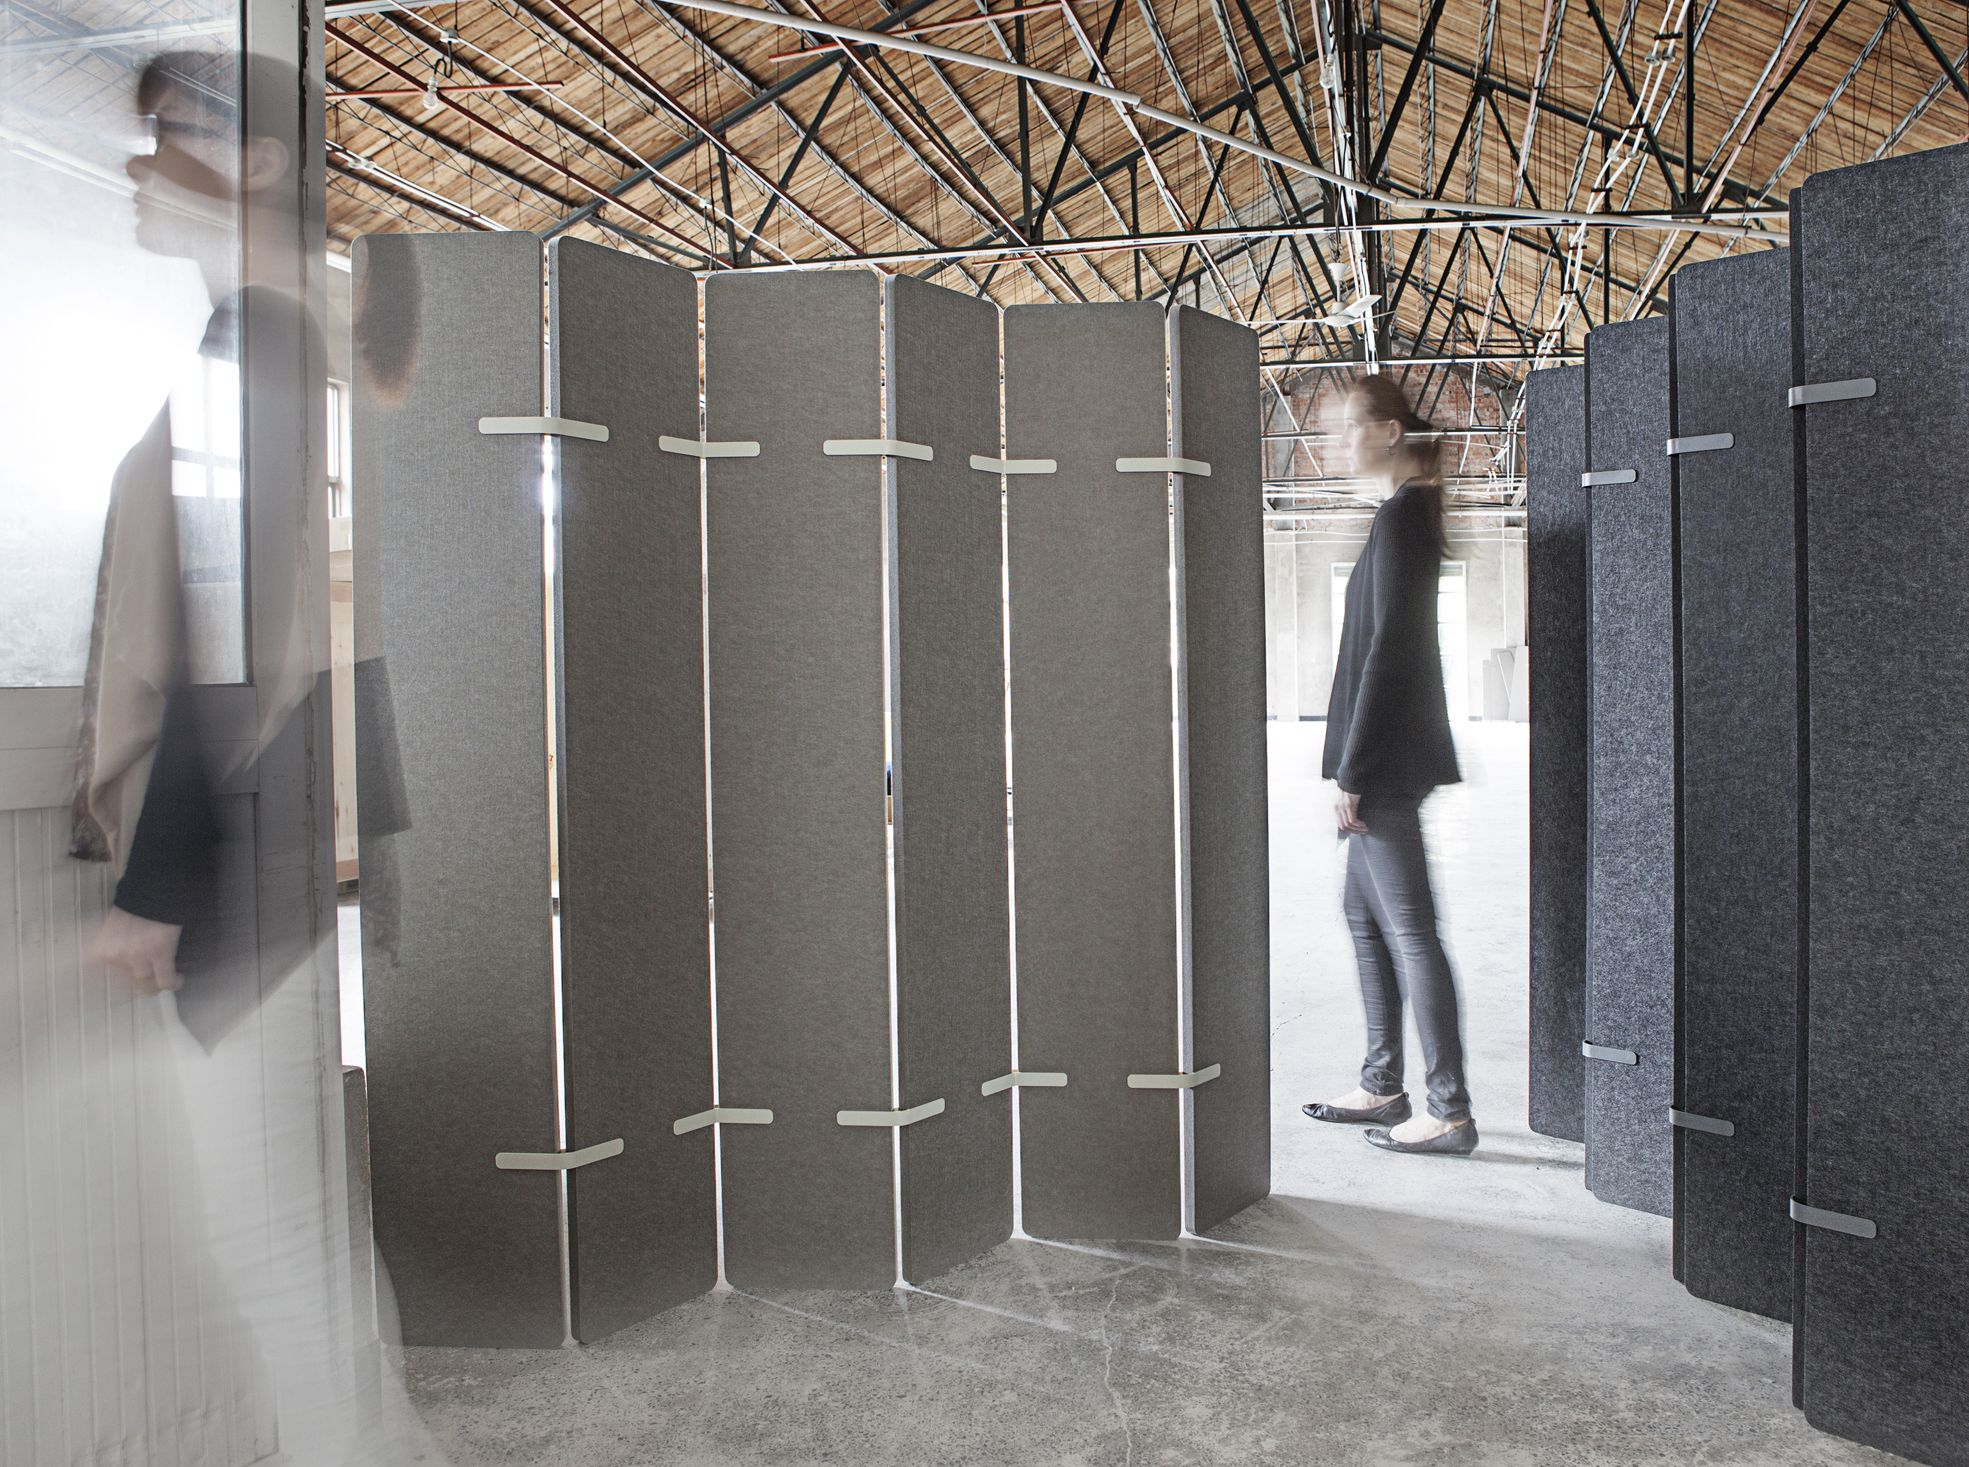 Kirei echopanel geometric tiles building for health - Echopanel Paling An Environmentally Friendly Acoustic Dividing Screen Made From Pet Fibres 60